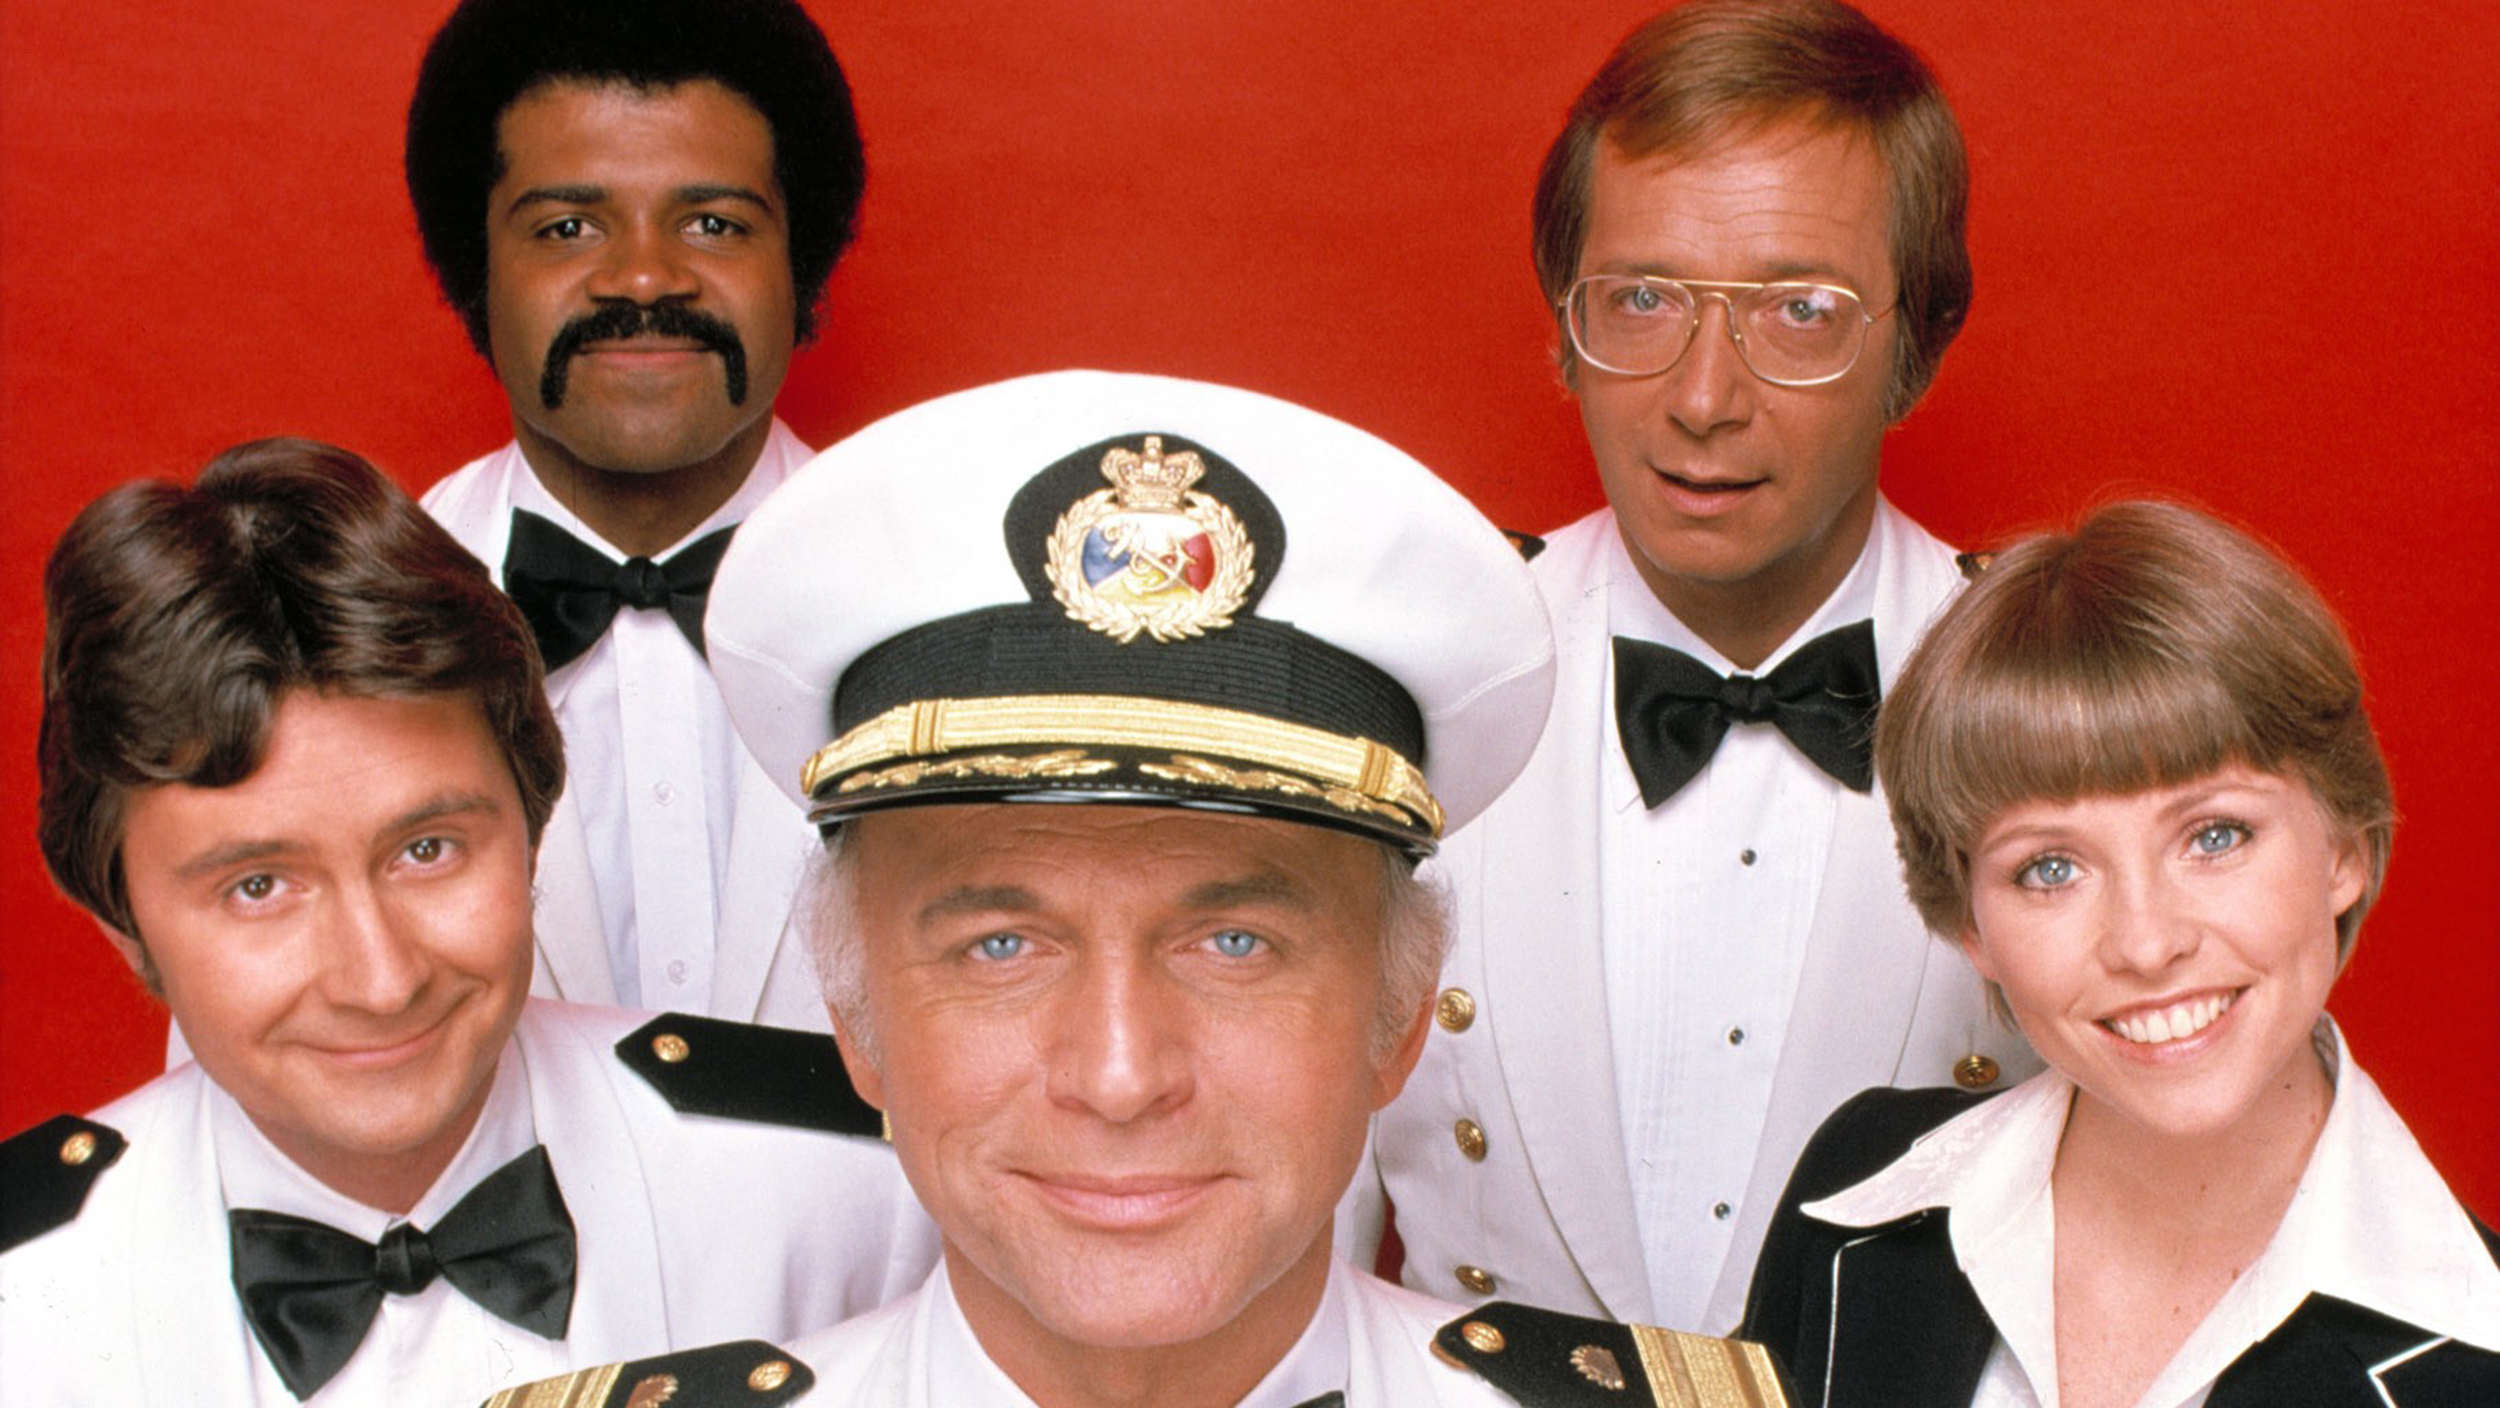 The loveboat adult videos